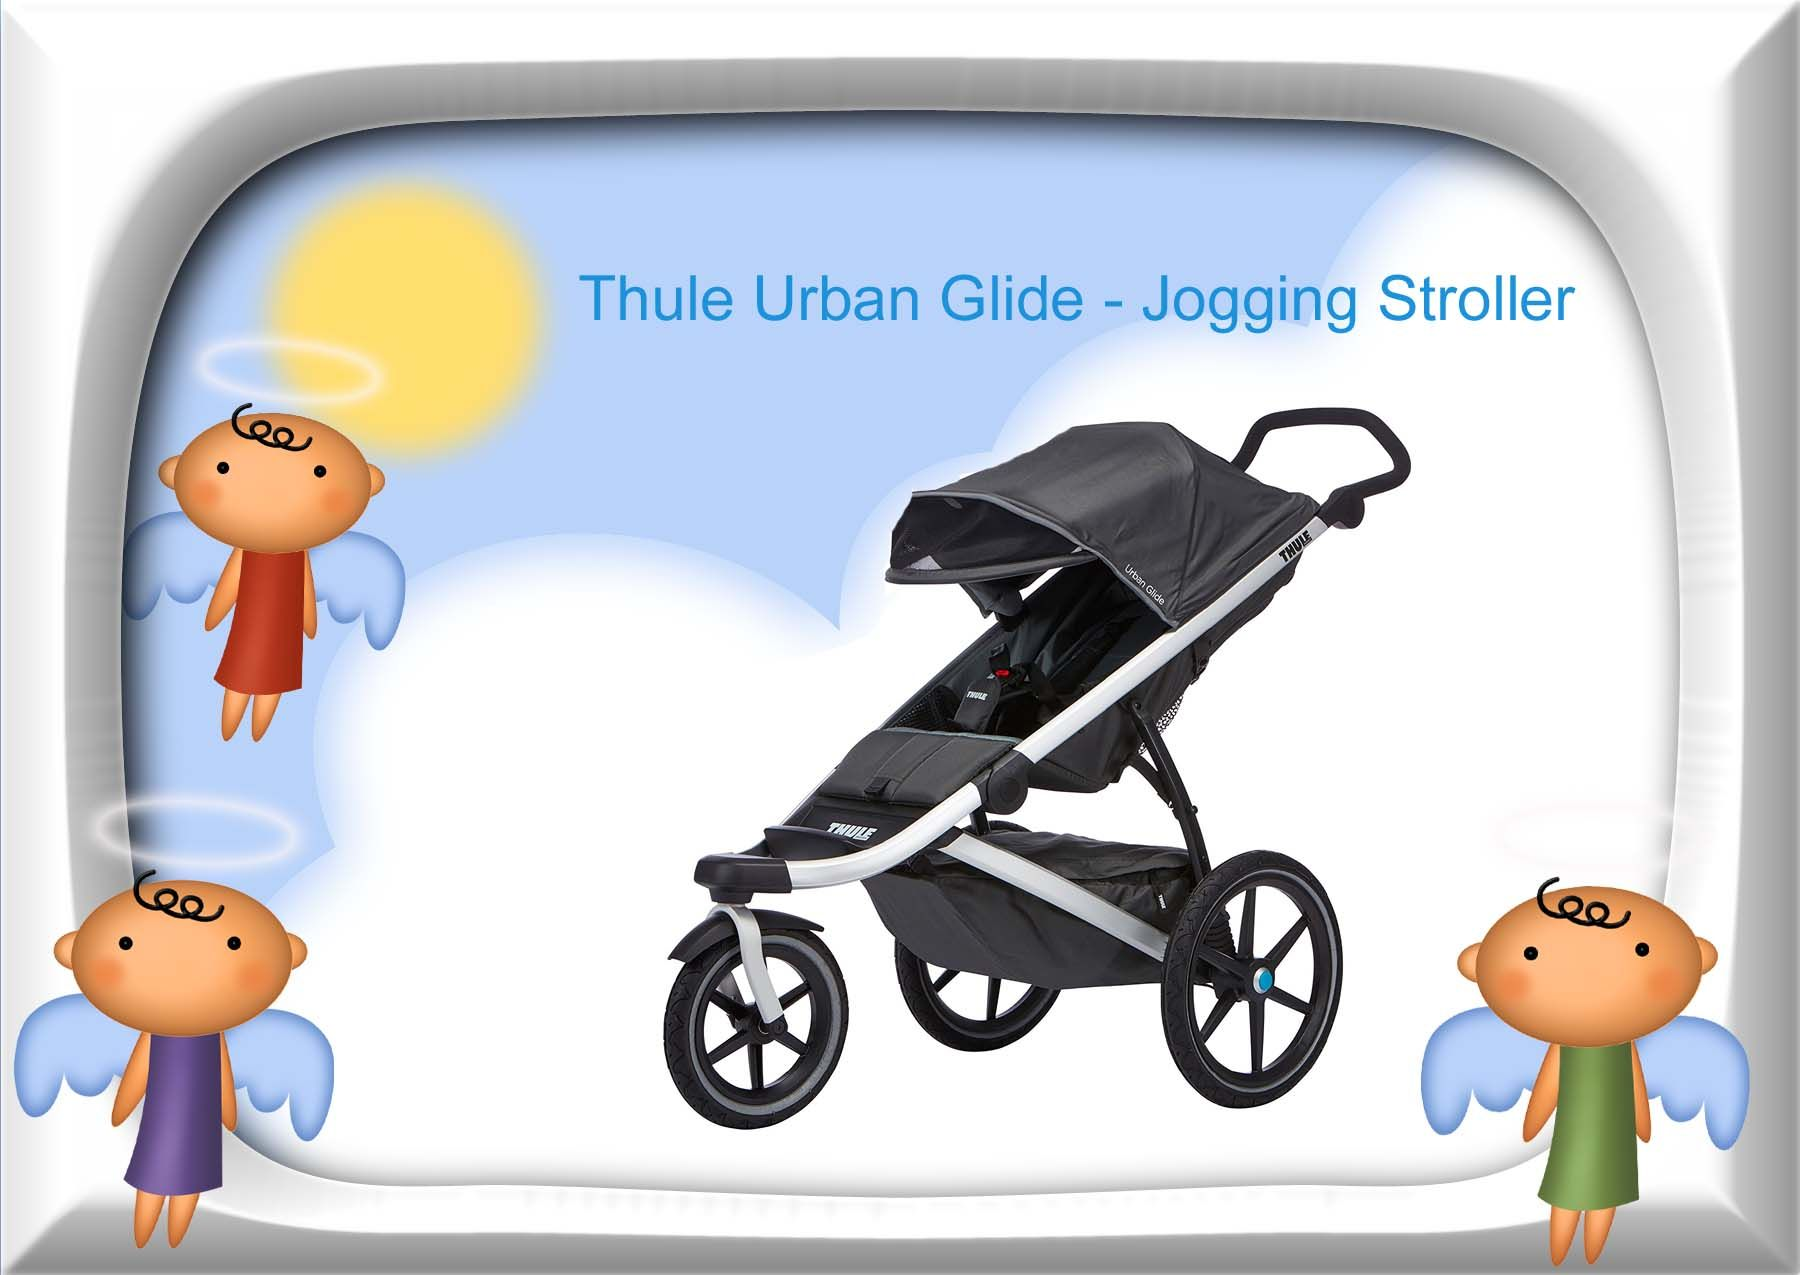 Thule Urban Glide jogger is a baby carriage that will get